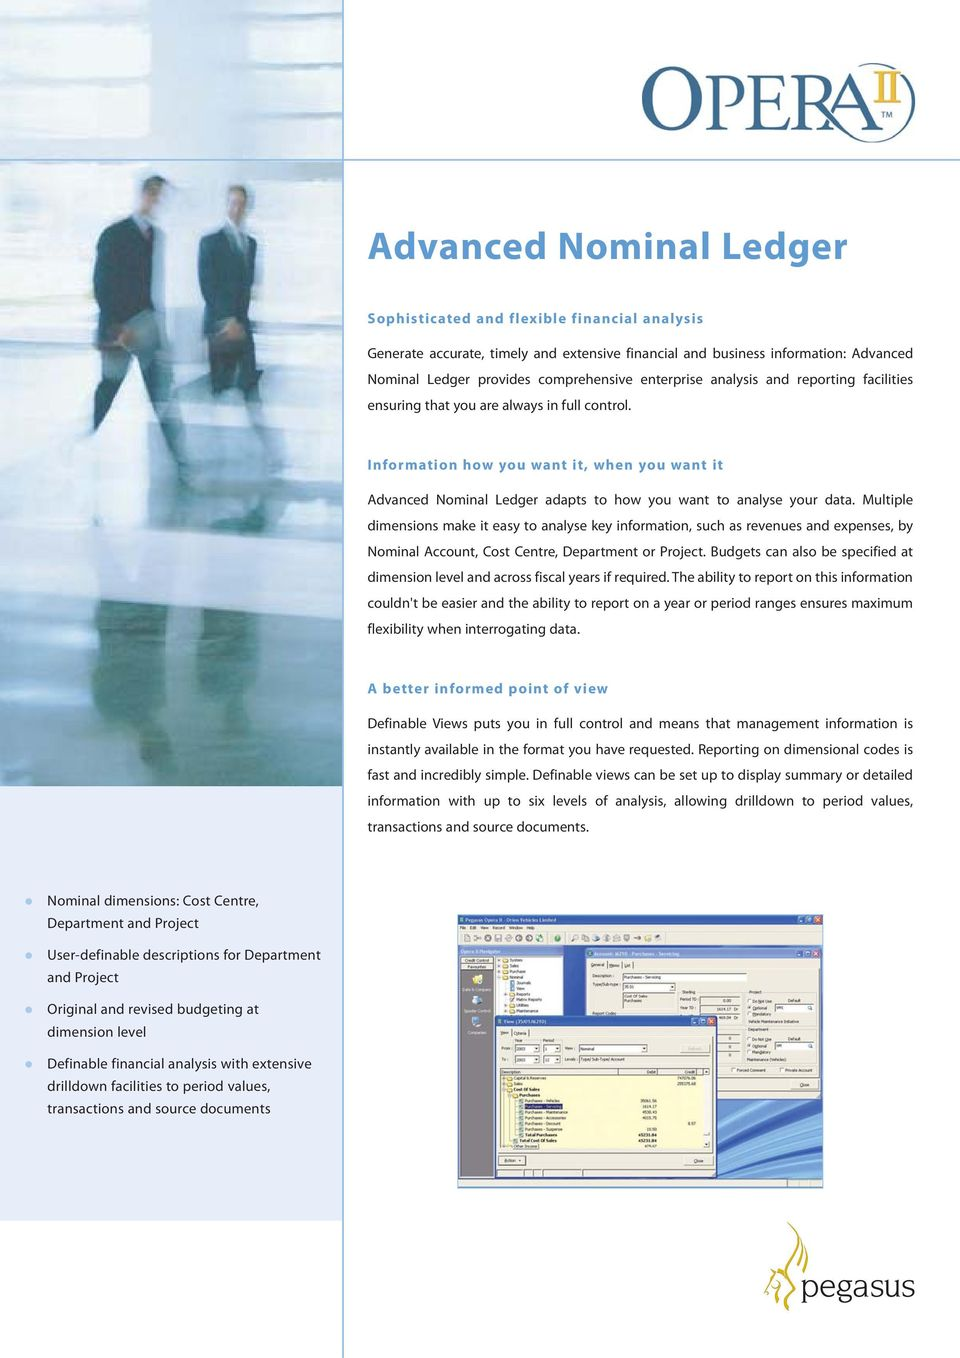 Information how you want it, when you want it Advanced Nominal Ledger adapts to how you want to analyse your data.